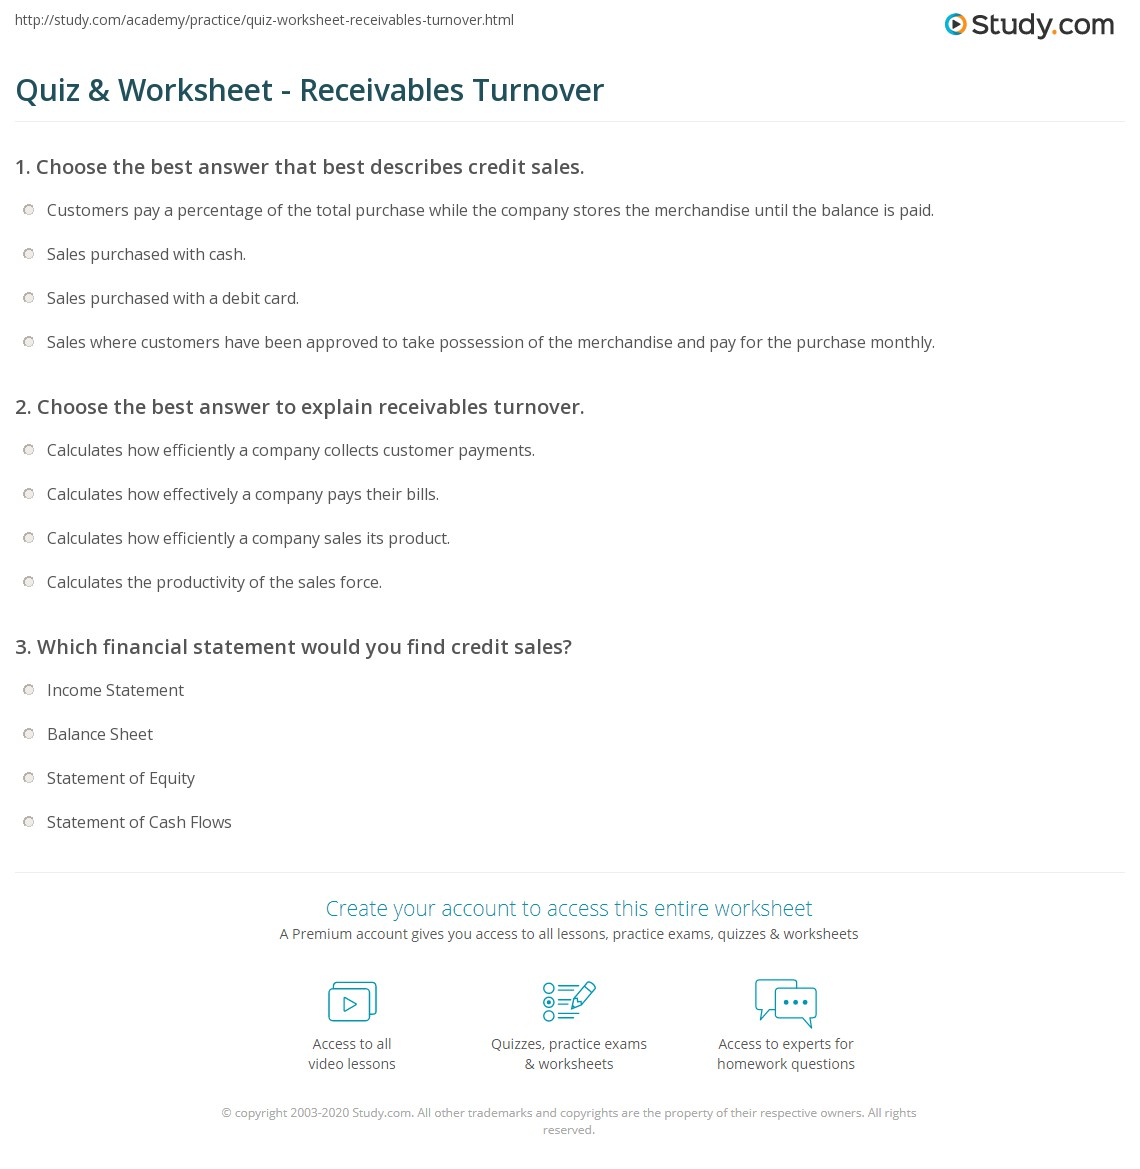 how to find receivables turnover